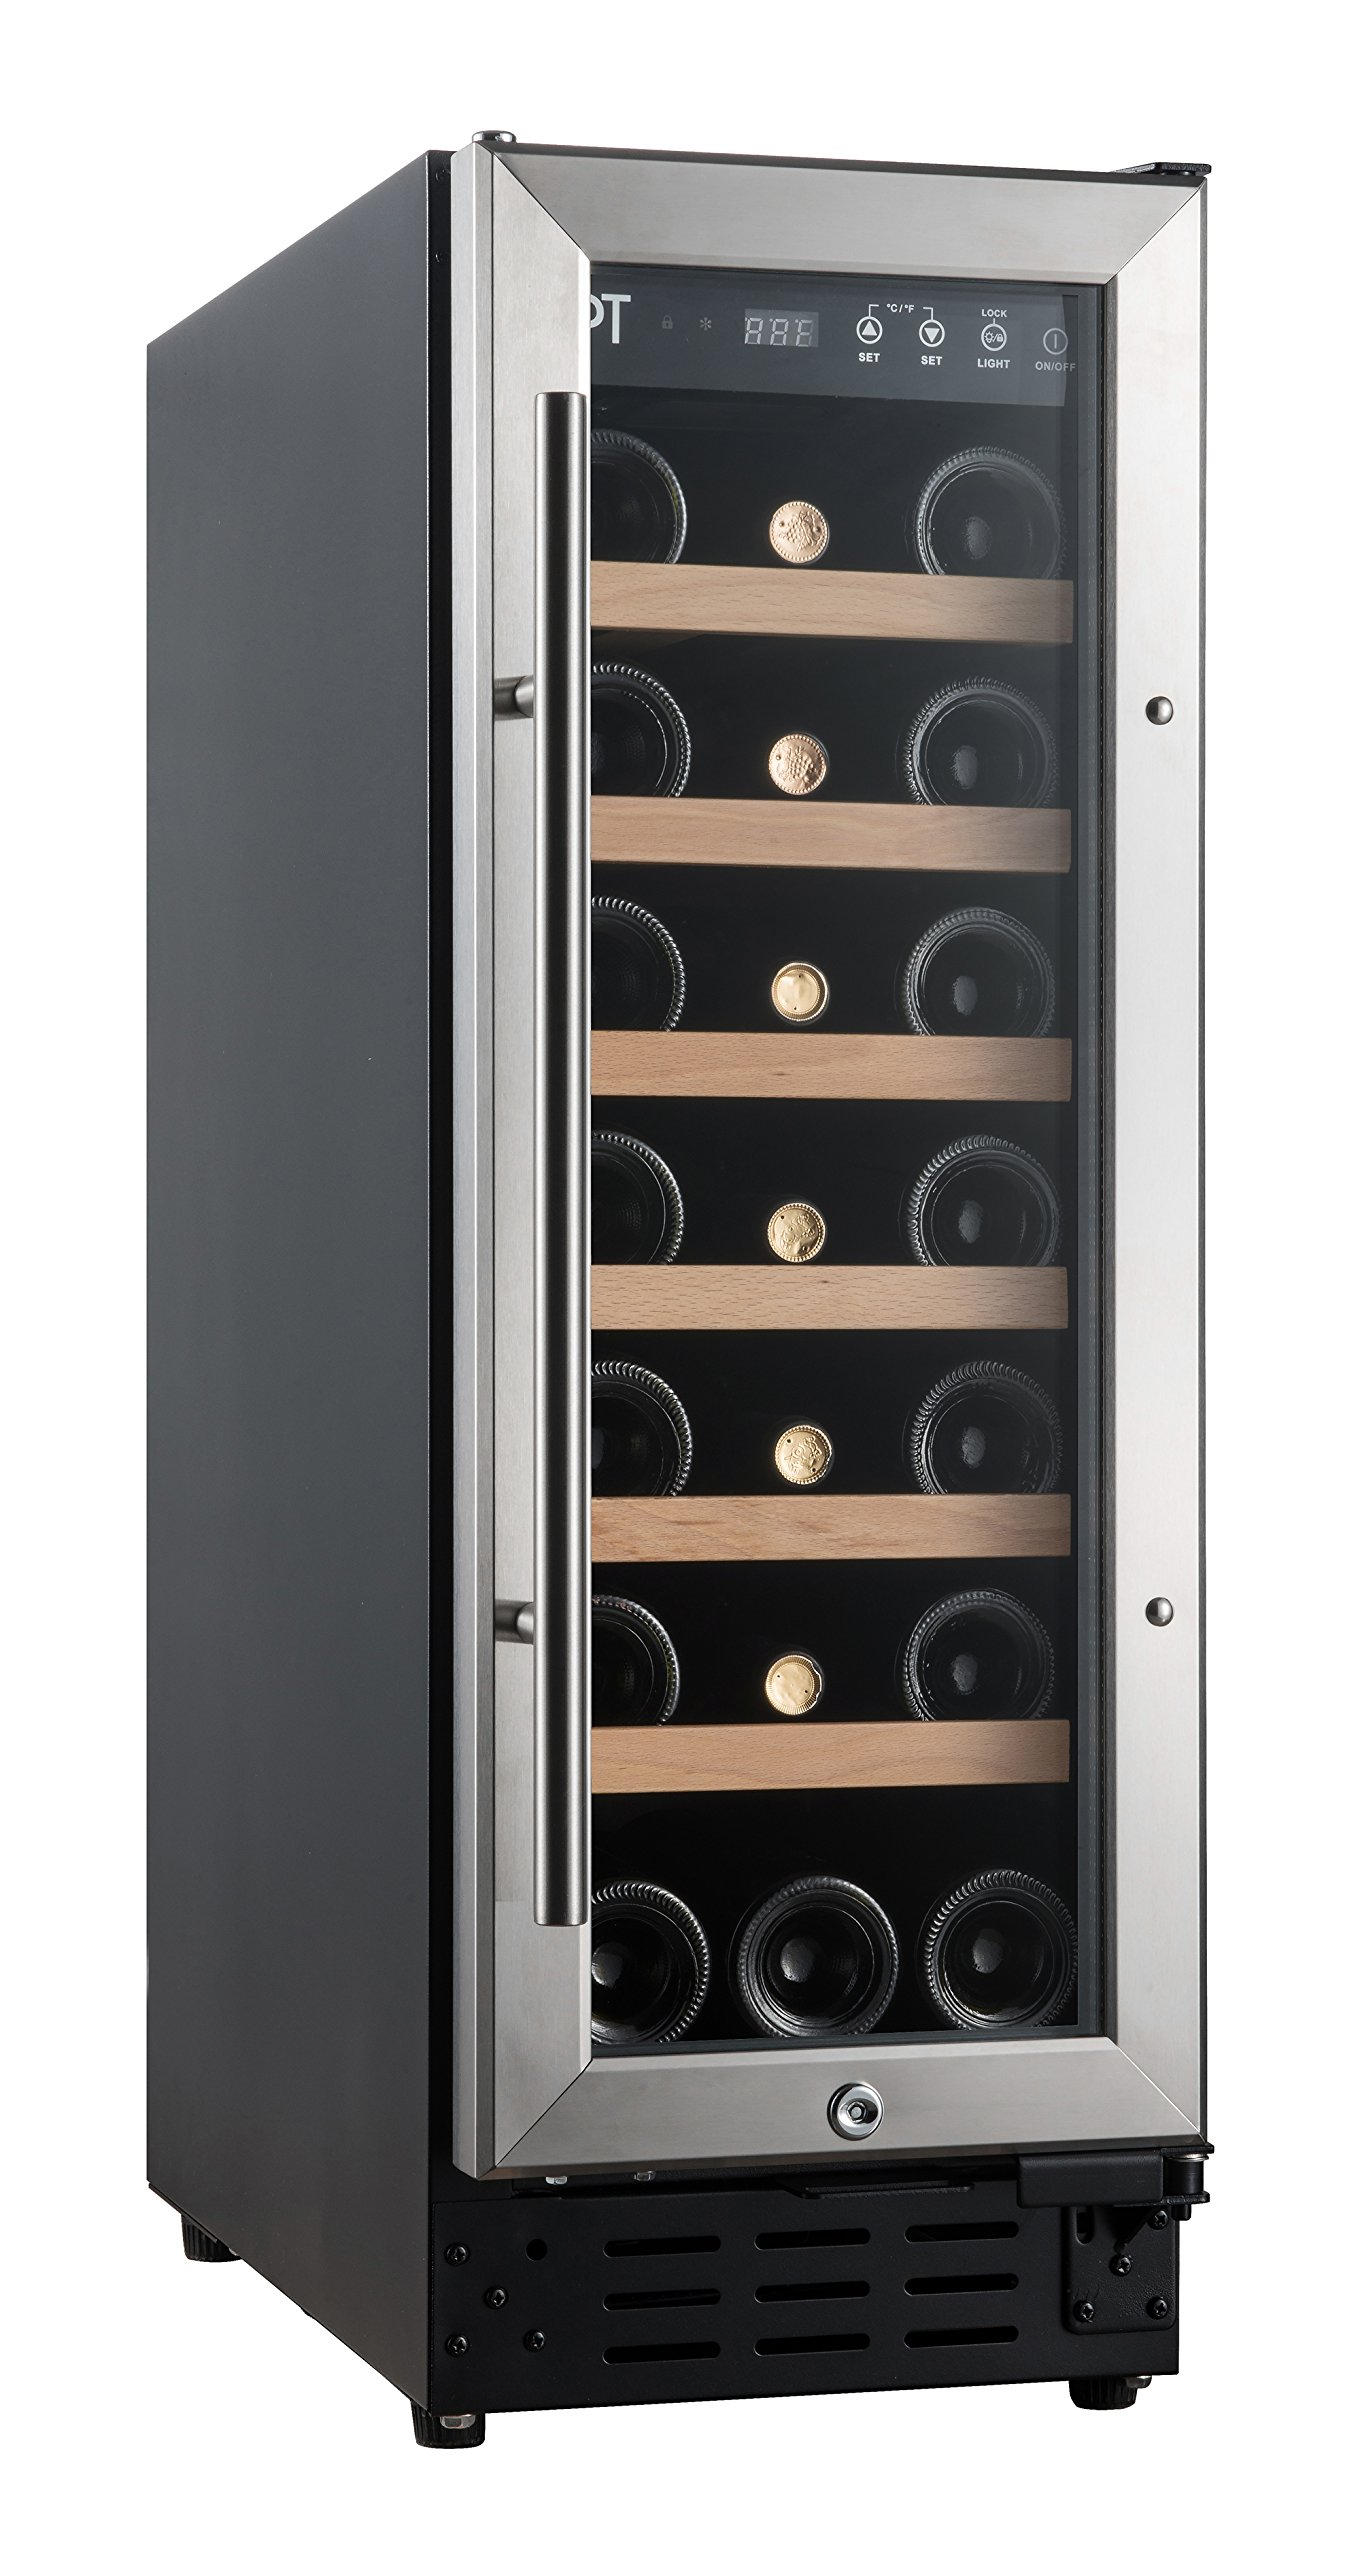 SPT WC-2193W Under-Counter Wine & Beverage Cooler with Wooden Shelves, Black